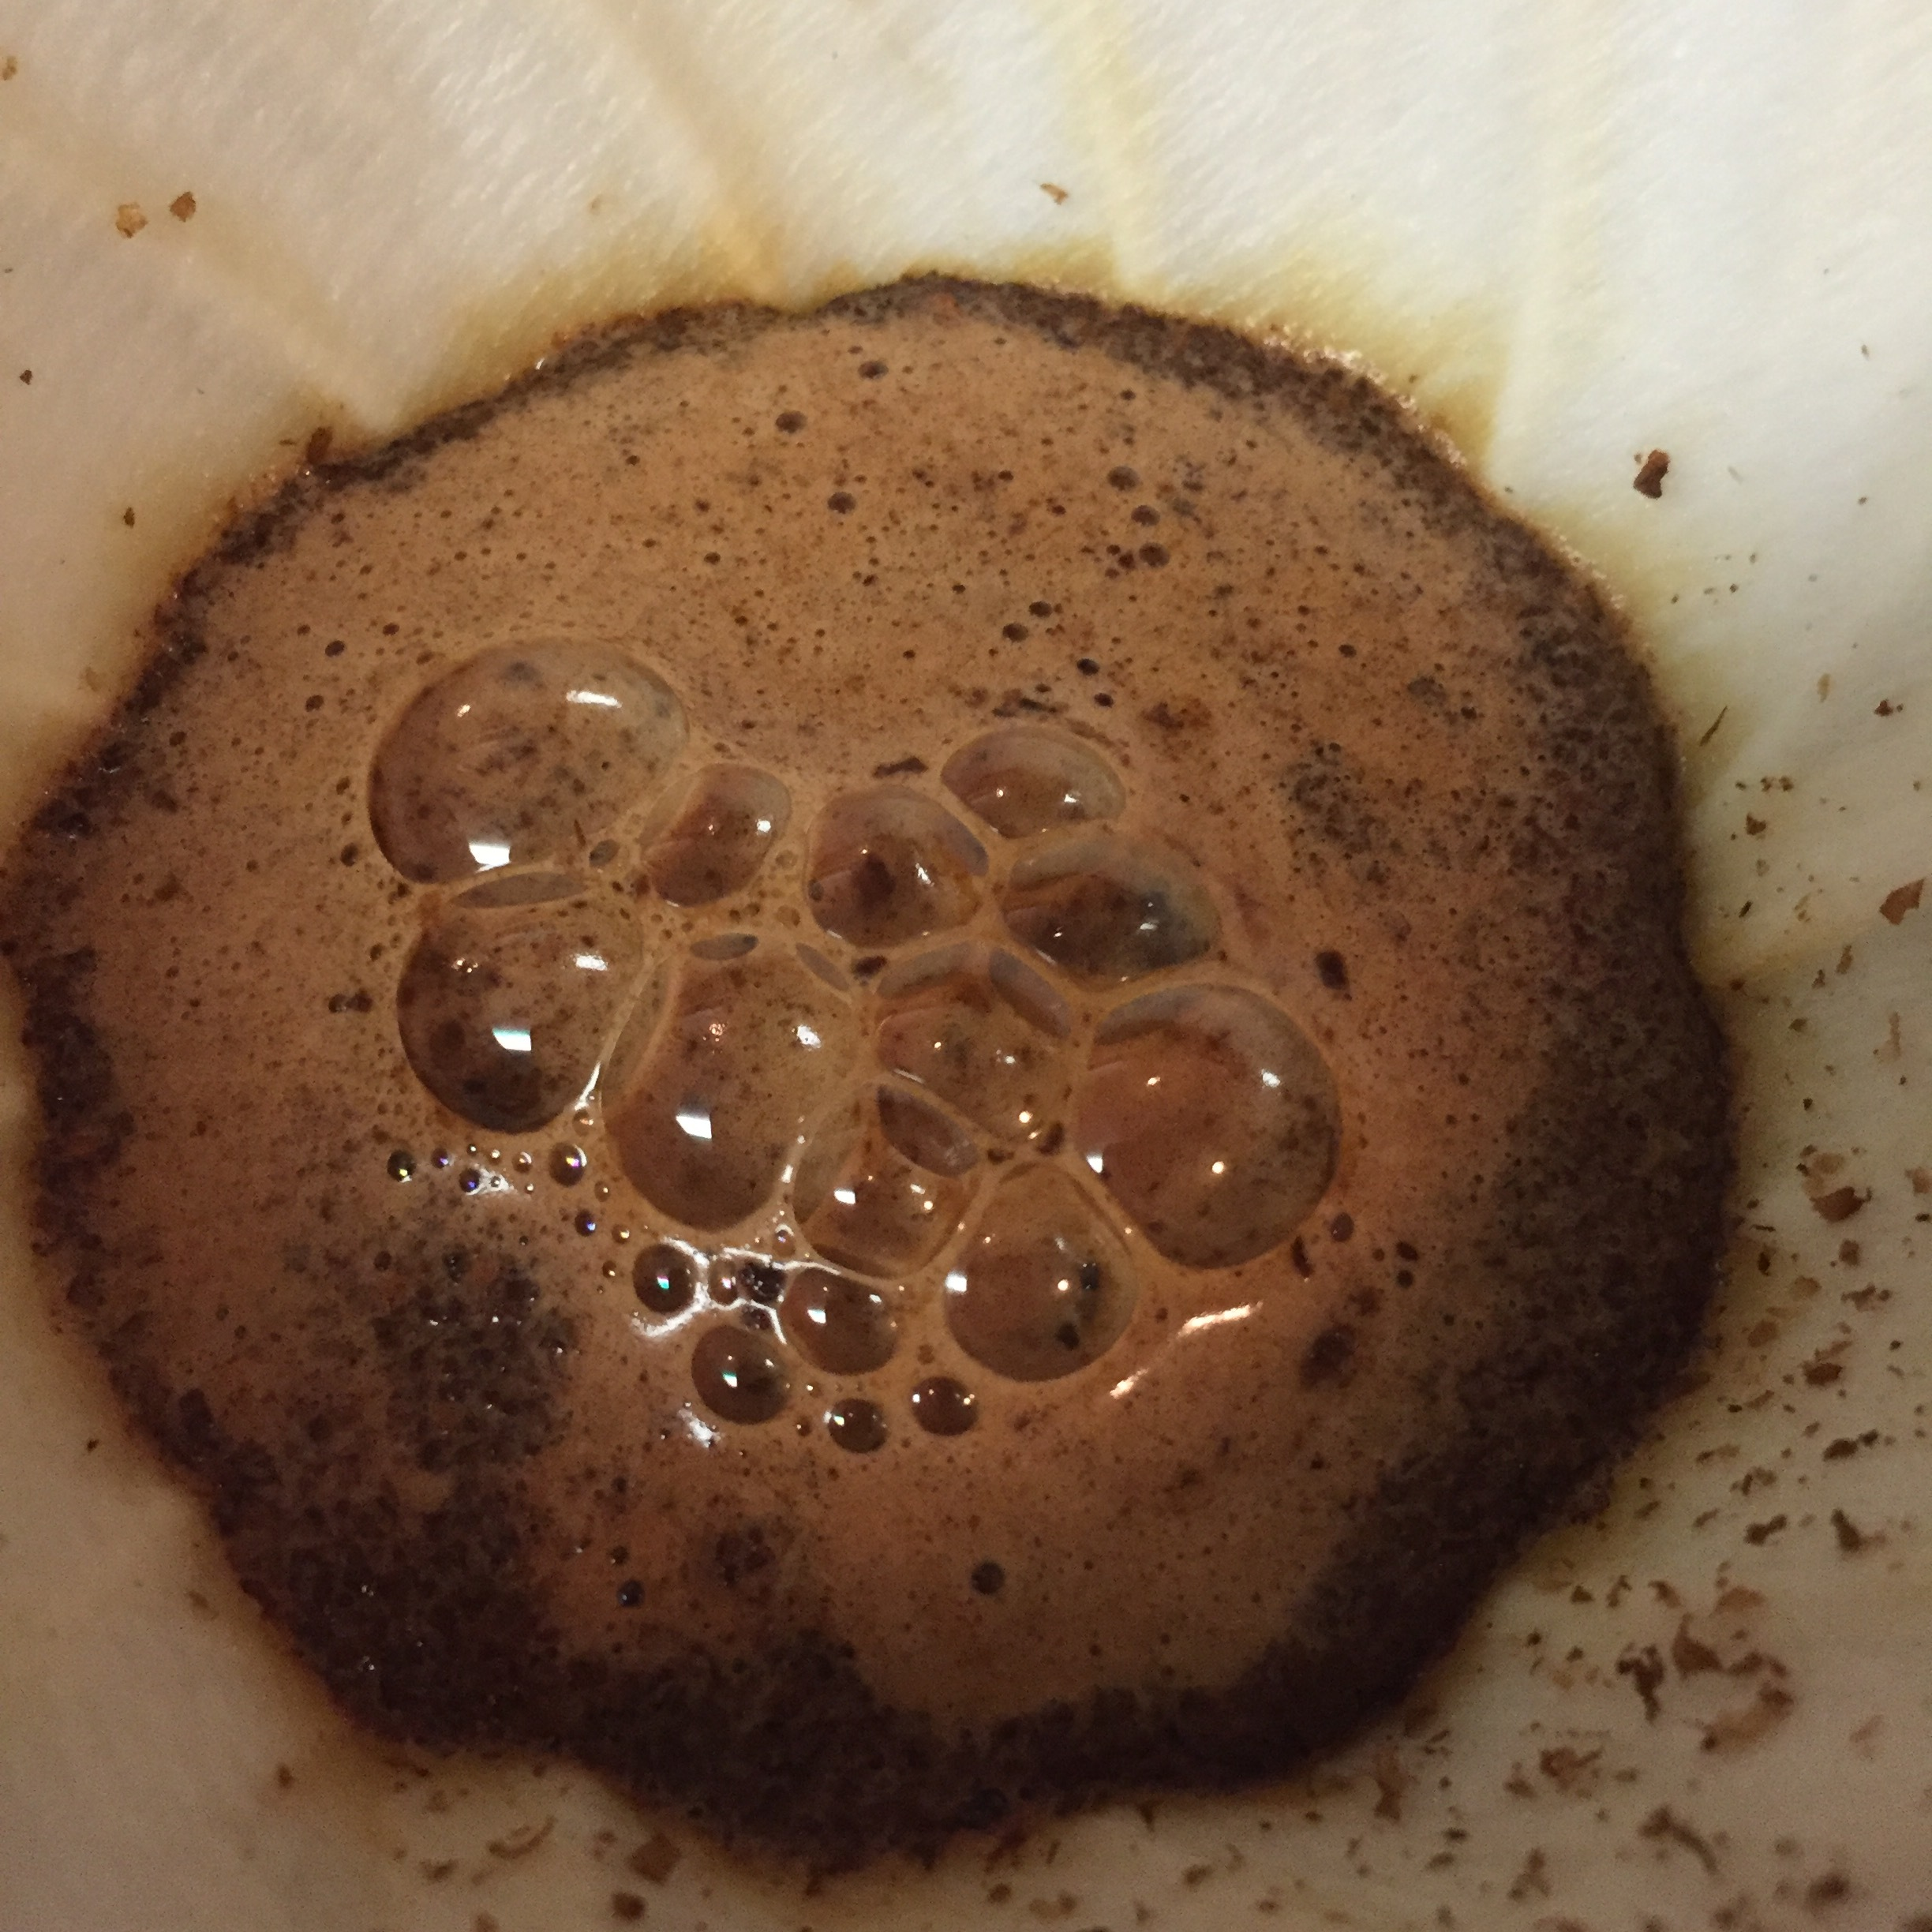 Standard pourover bloom, before stirring